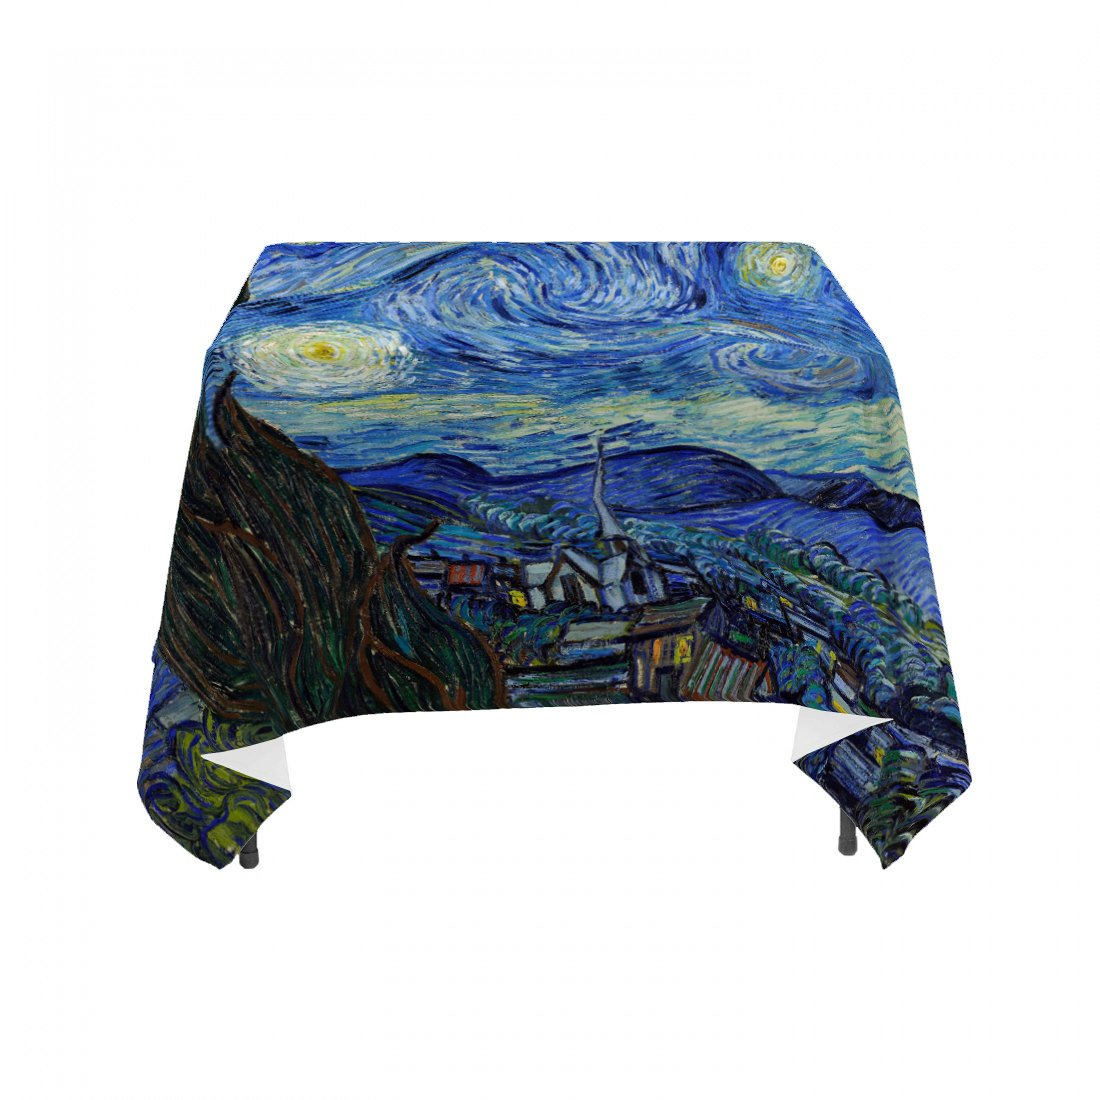 "Vincent Van Gogh's ""Starry Night"", Linen Table Cloth"